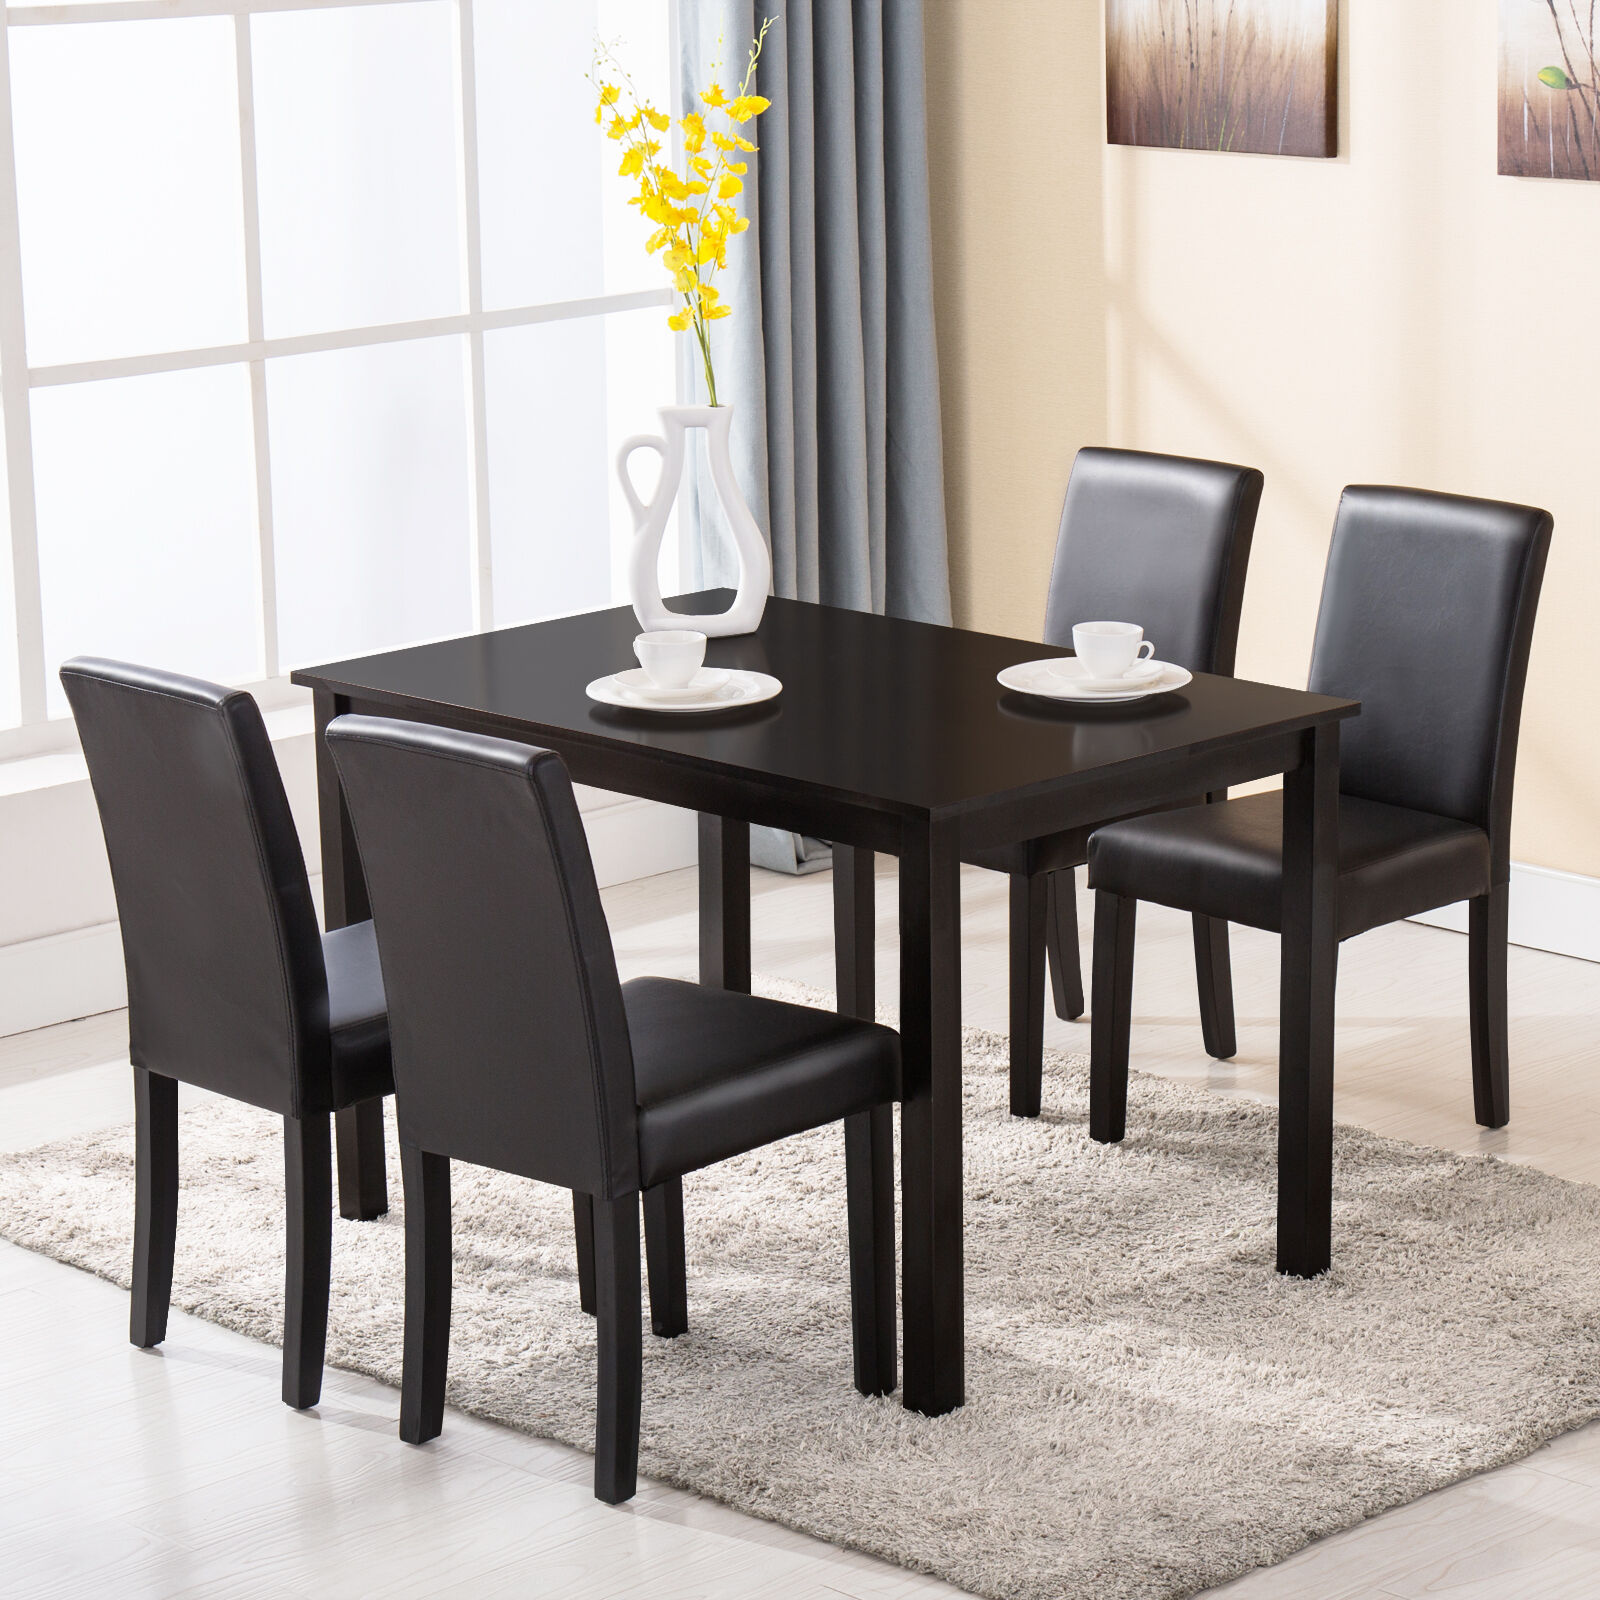 5 piece dining table set 4 chairs wood kitchen dinette for Dining room sets 4 chairs